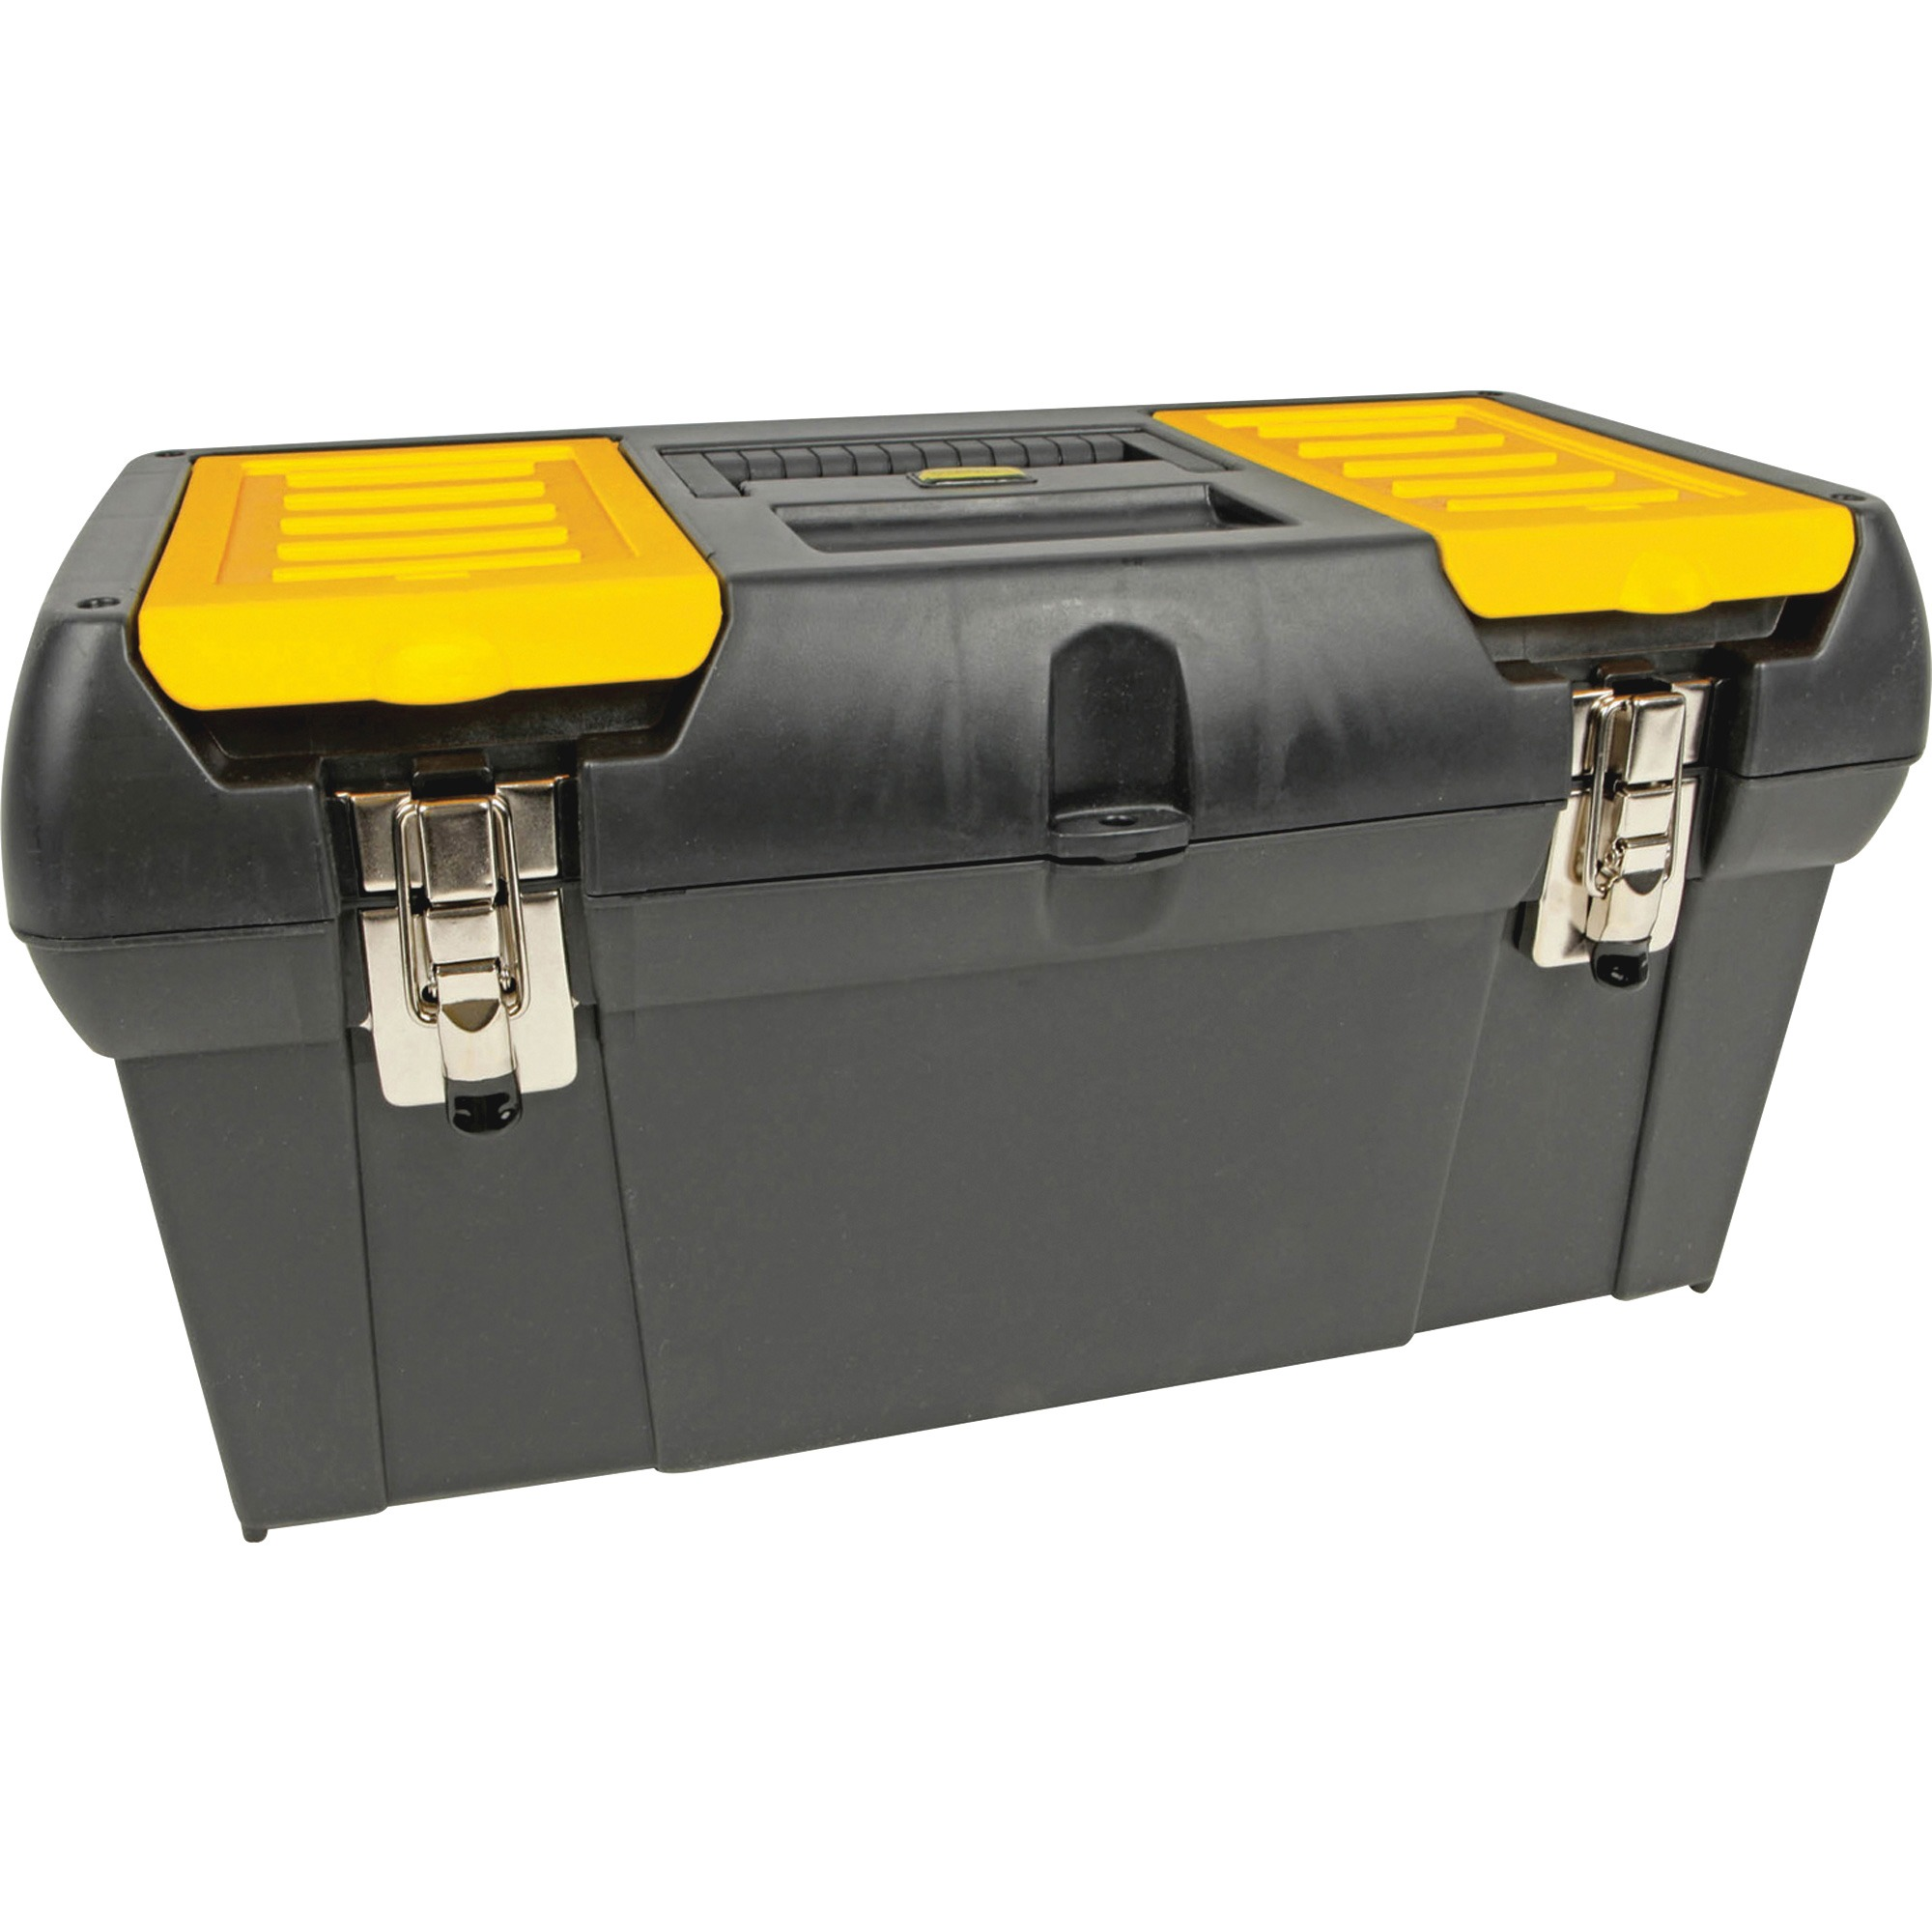 Stanley Series 2000 Toolbox w/Tray, Two Lid Compartments